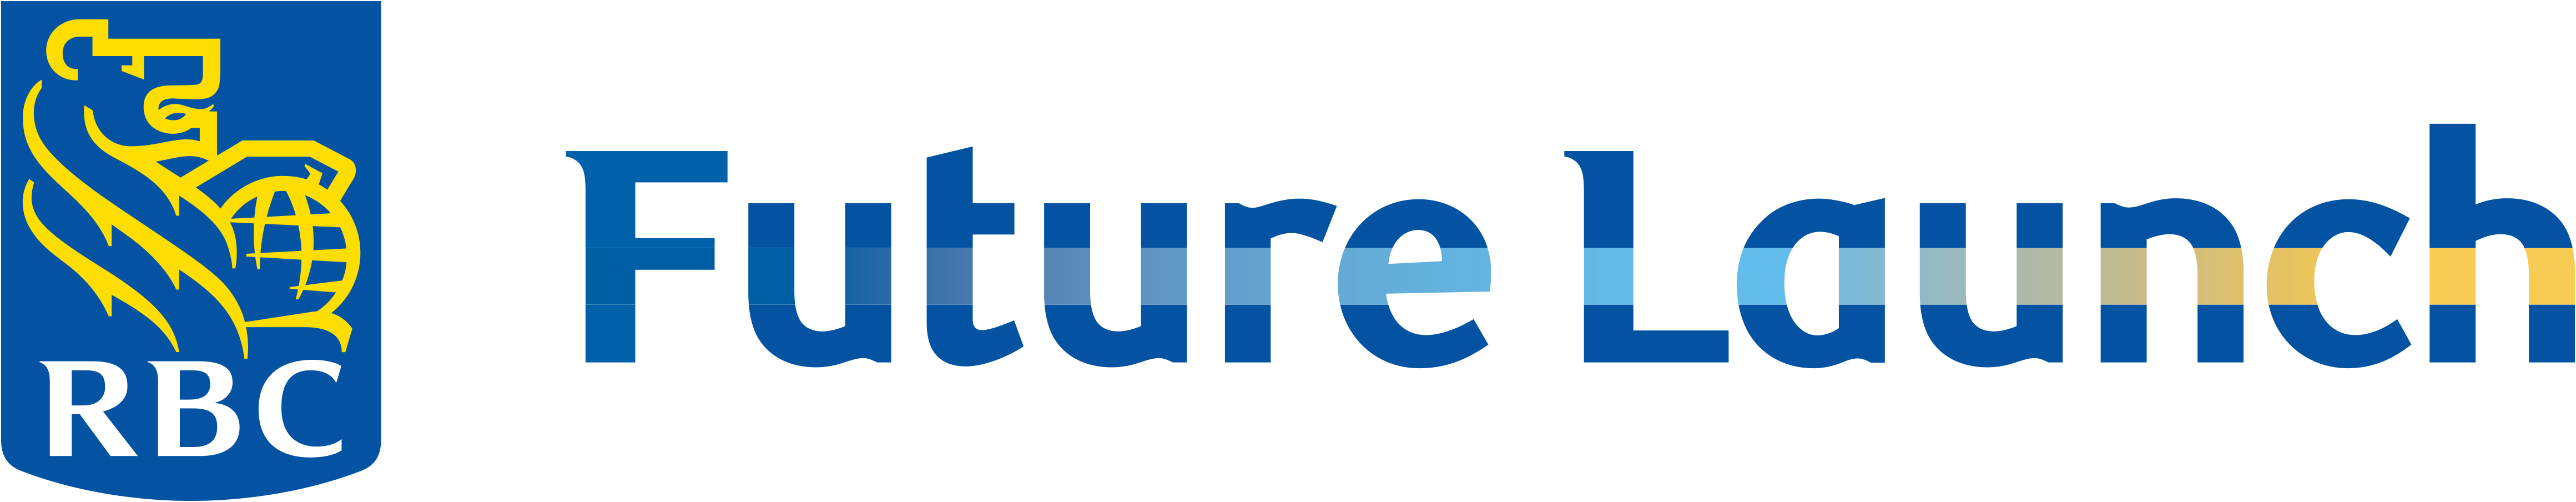 RBC Future Launch logo